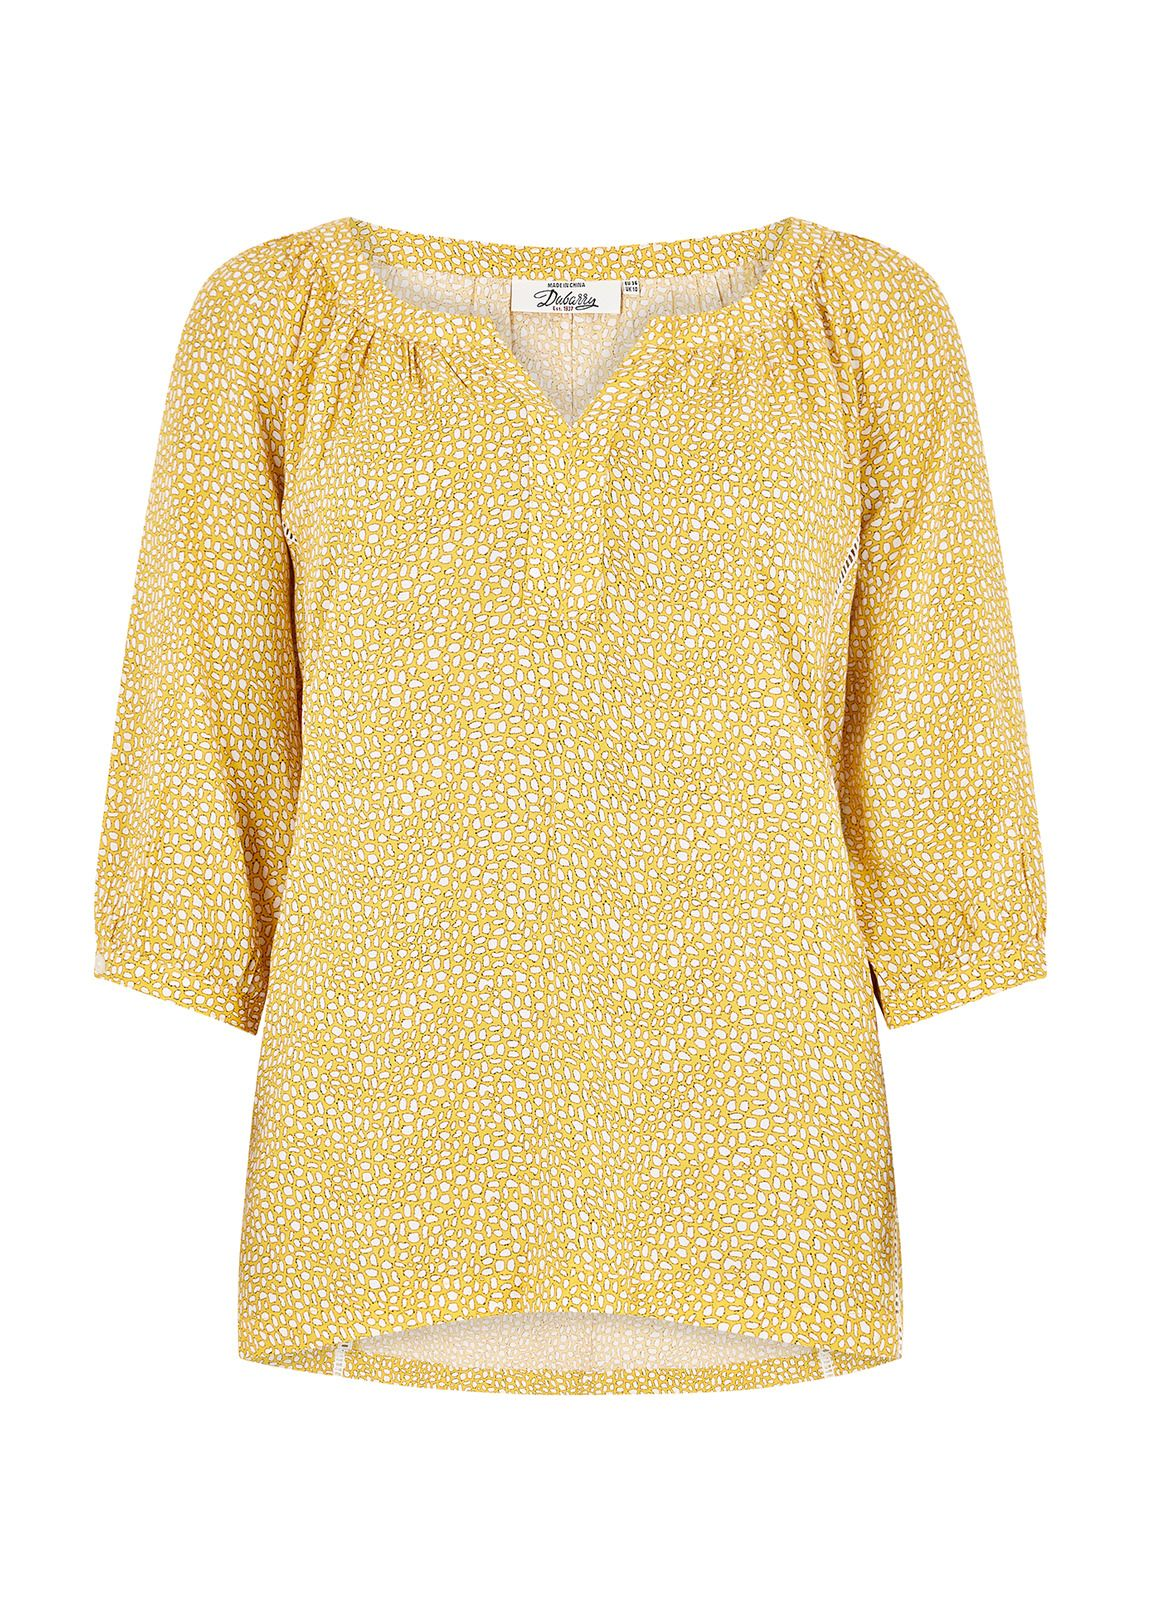 Dubarry_Dahlia Shirt - Sunflower_Image_2